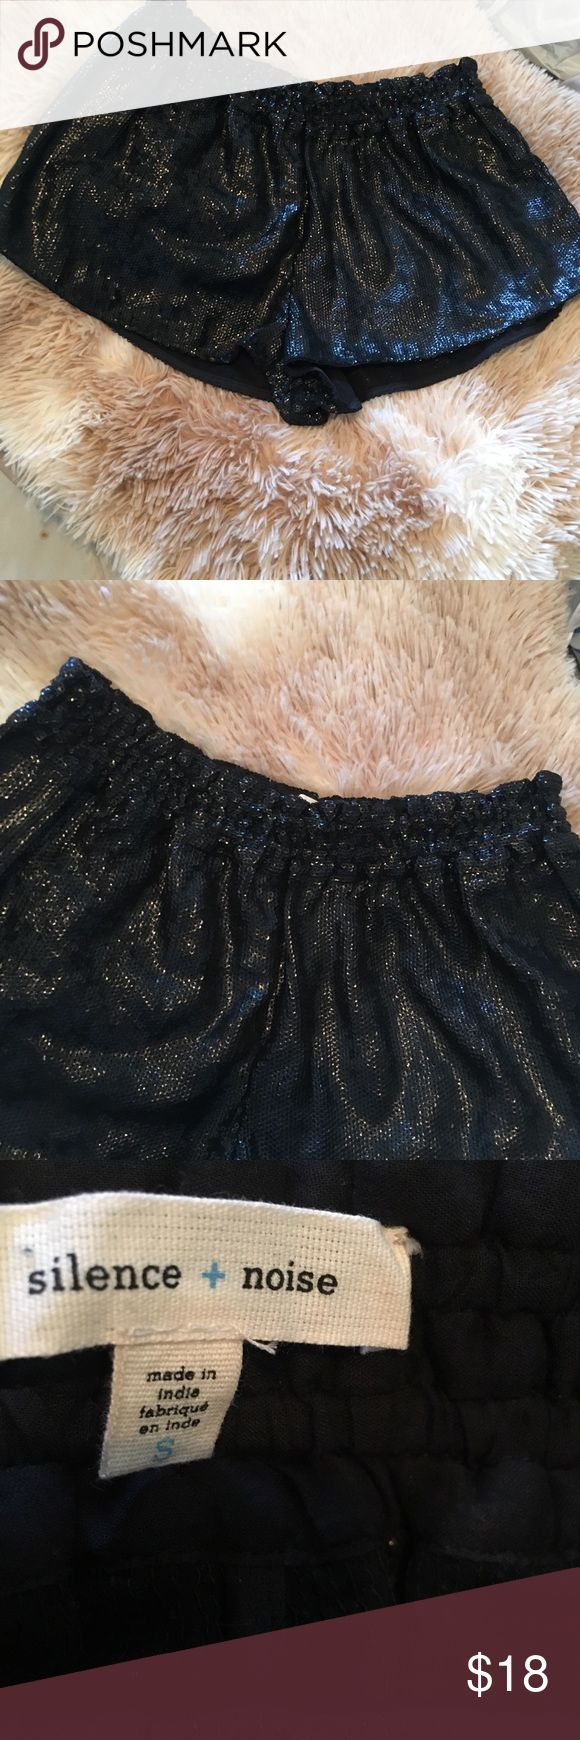 Silence + noise sparkly shorts size small Silence + Noise sparkly shorts. In good condition. Name Tag is coming off shorts as you can see silence + noise Shorts